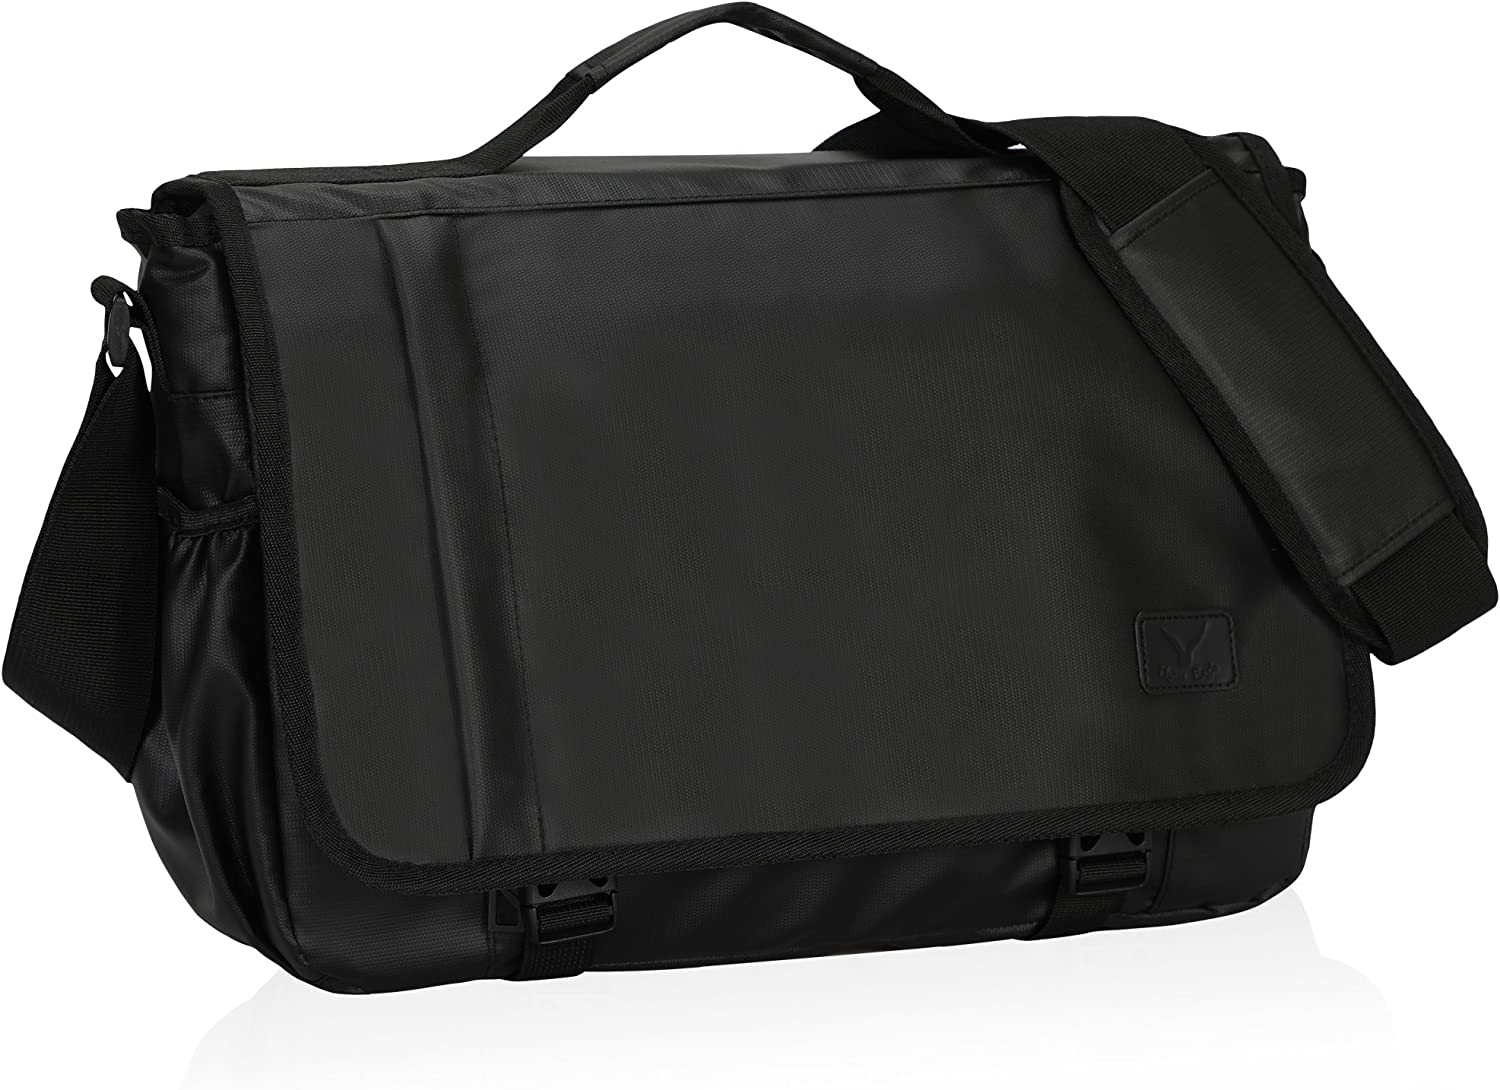 Hynes Eagle Laptop Messenger Bag 15.6 inch Commute Shoulder Bag for Men & Women Black